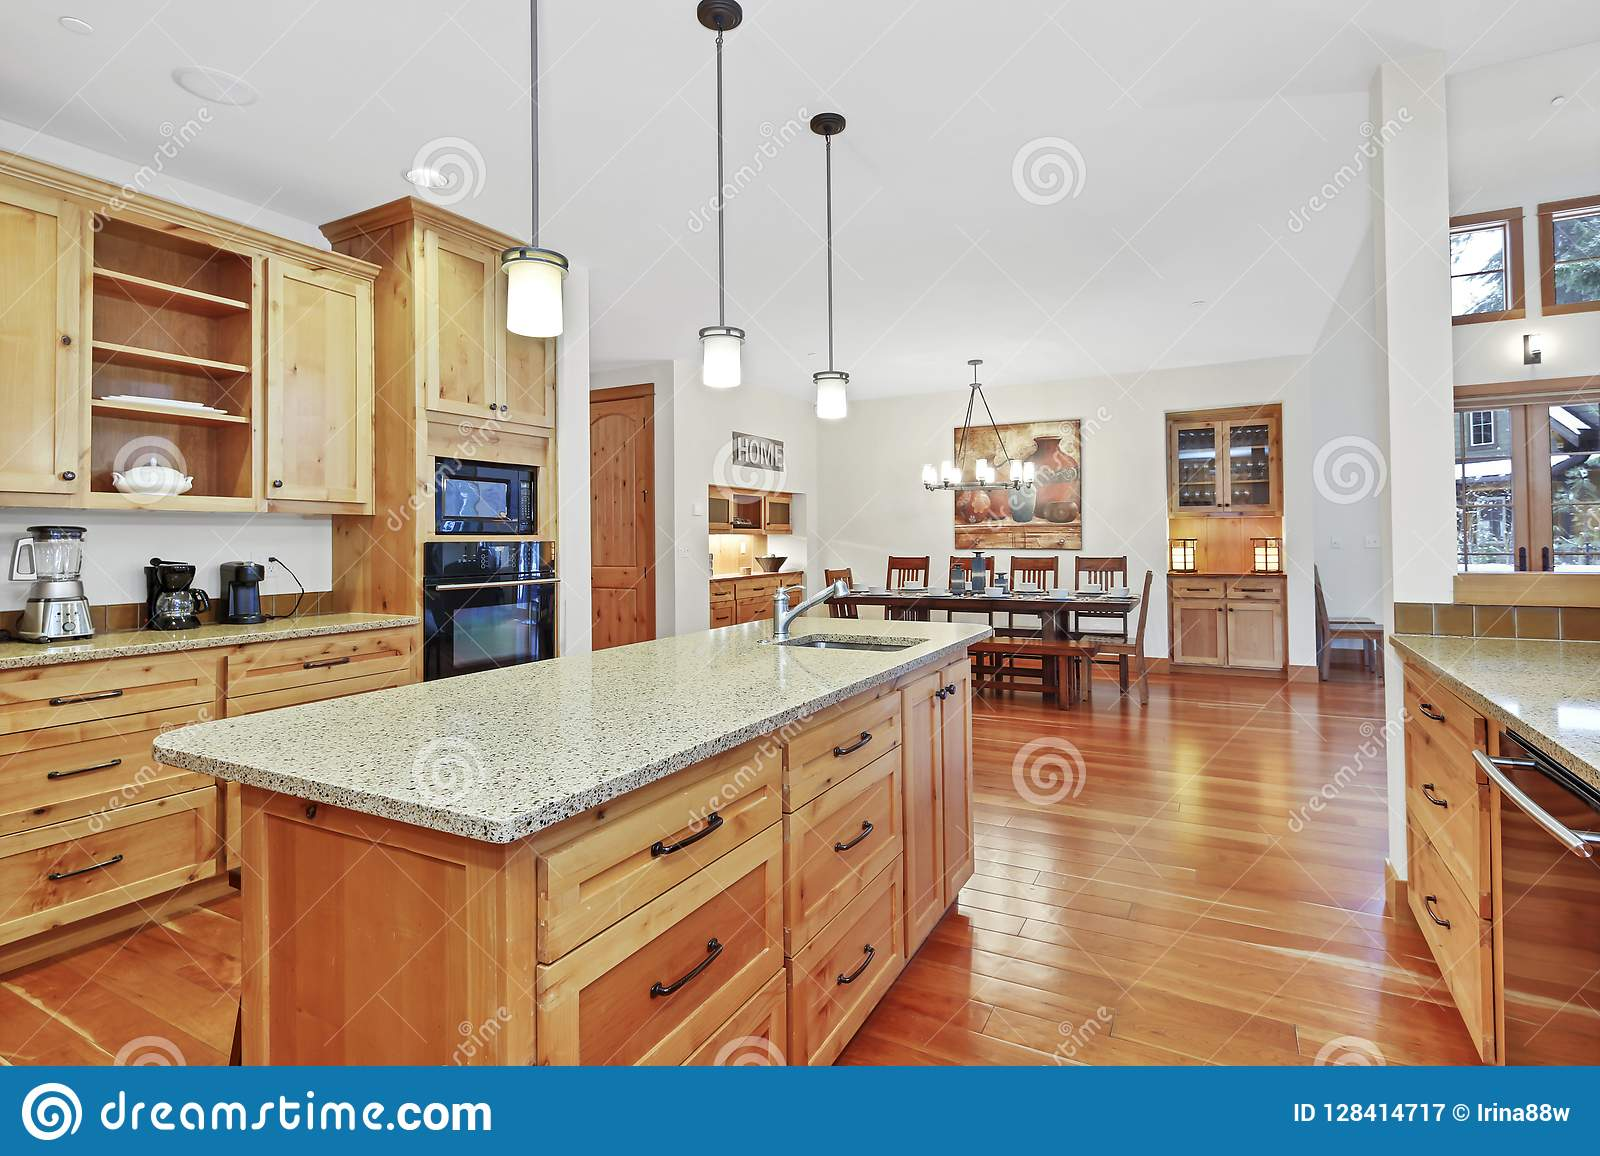 Image of: Beautiful Kitchen With Light Wood Cabinets Stock Image Image Of Ceiling Architecture 128414717